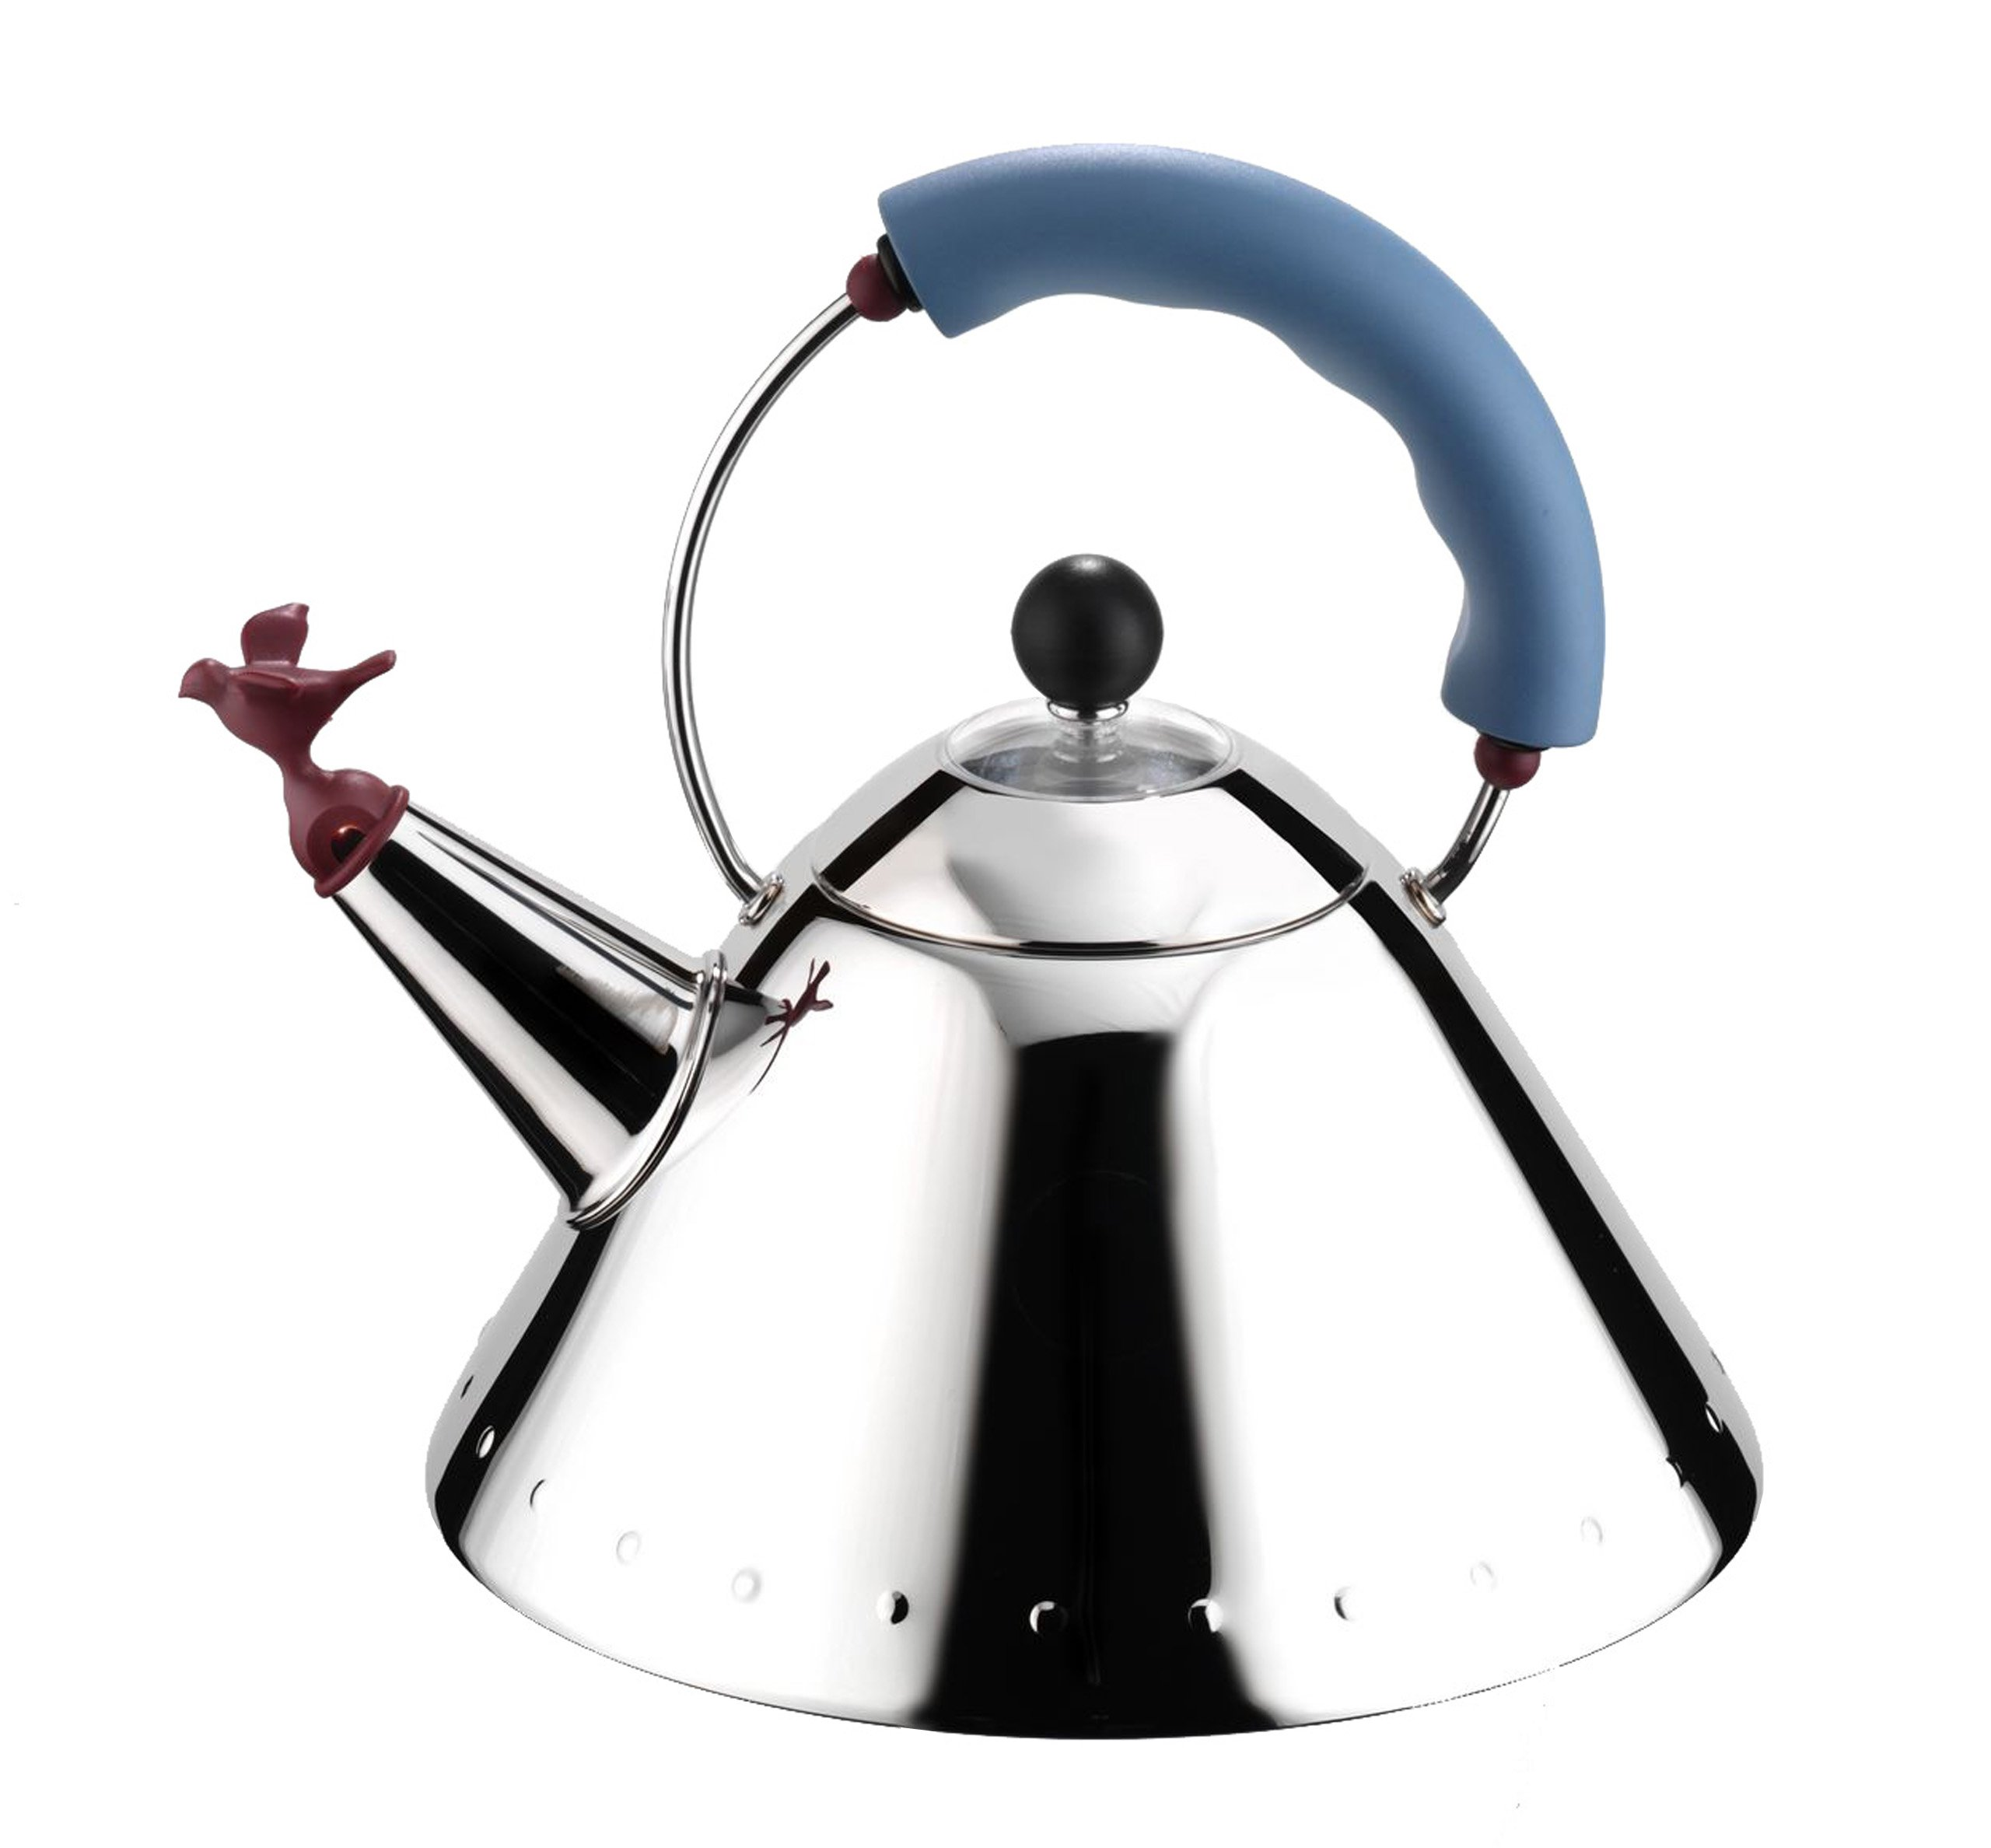 Alessi Michael Graves Kettle with Bird Whistle, Blue Handle by Alessi